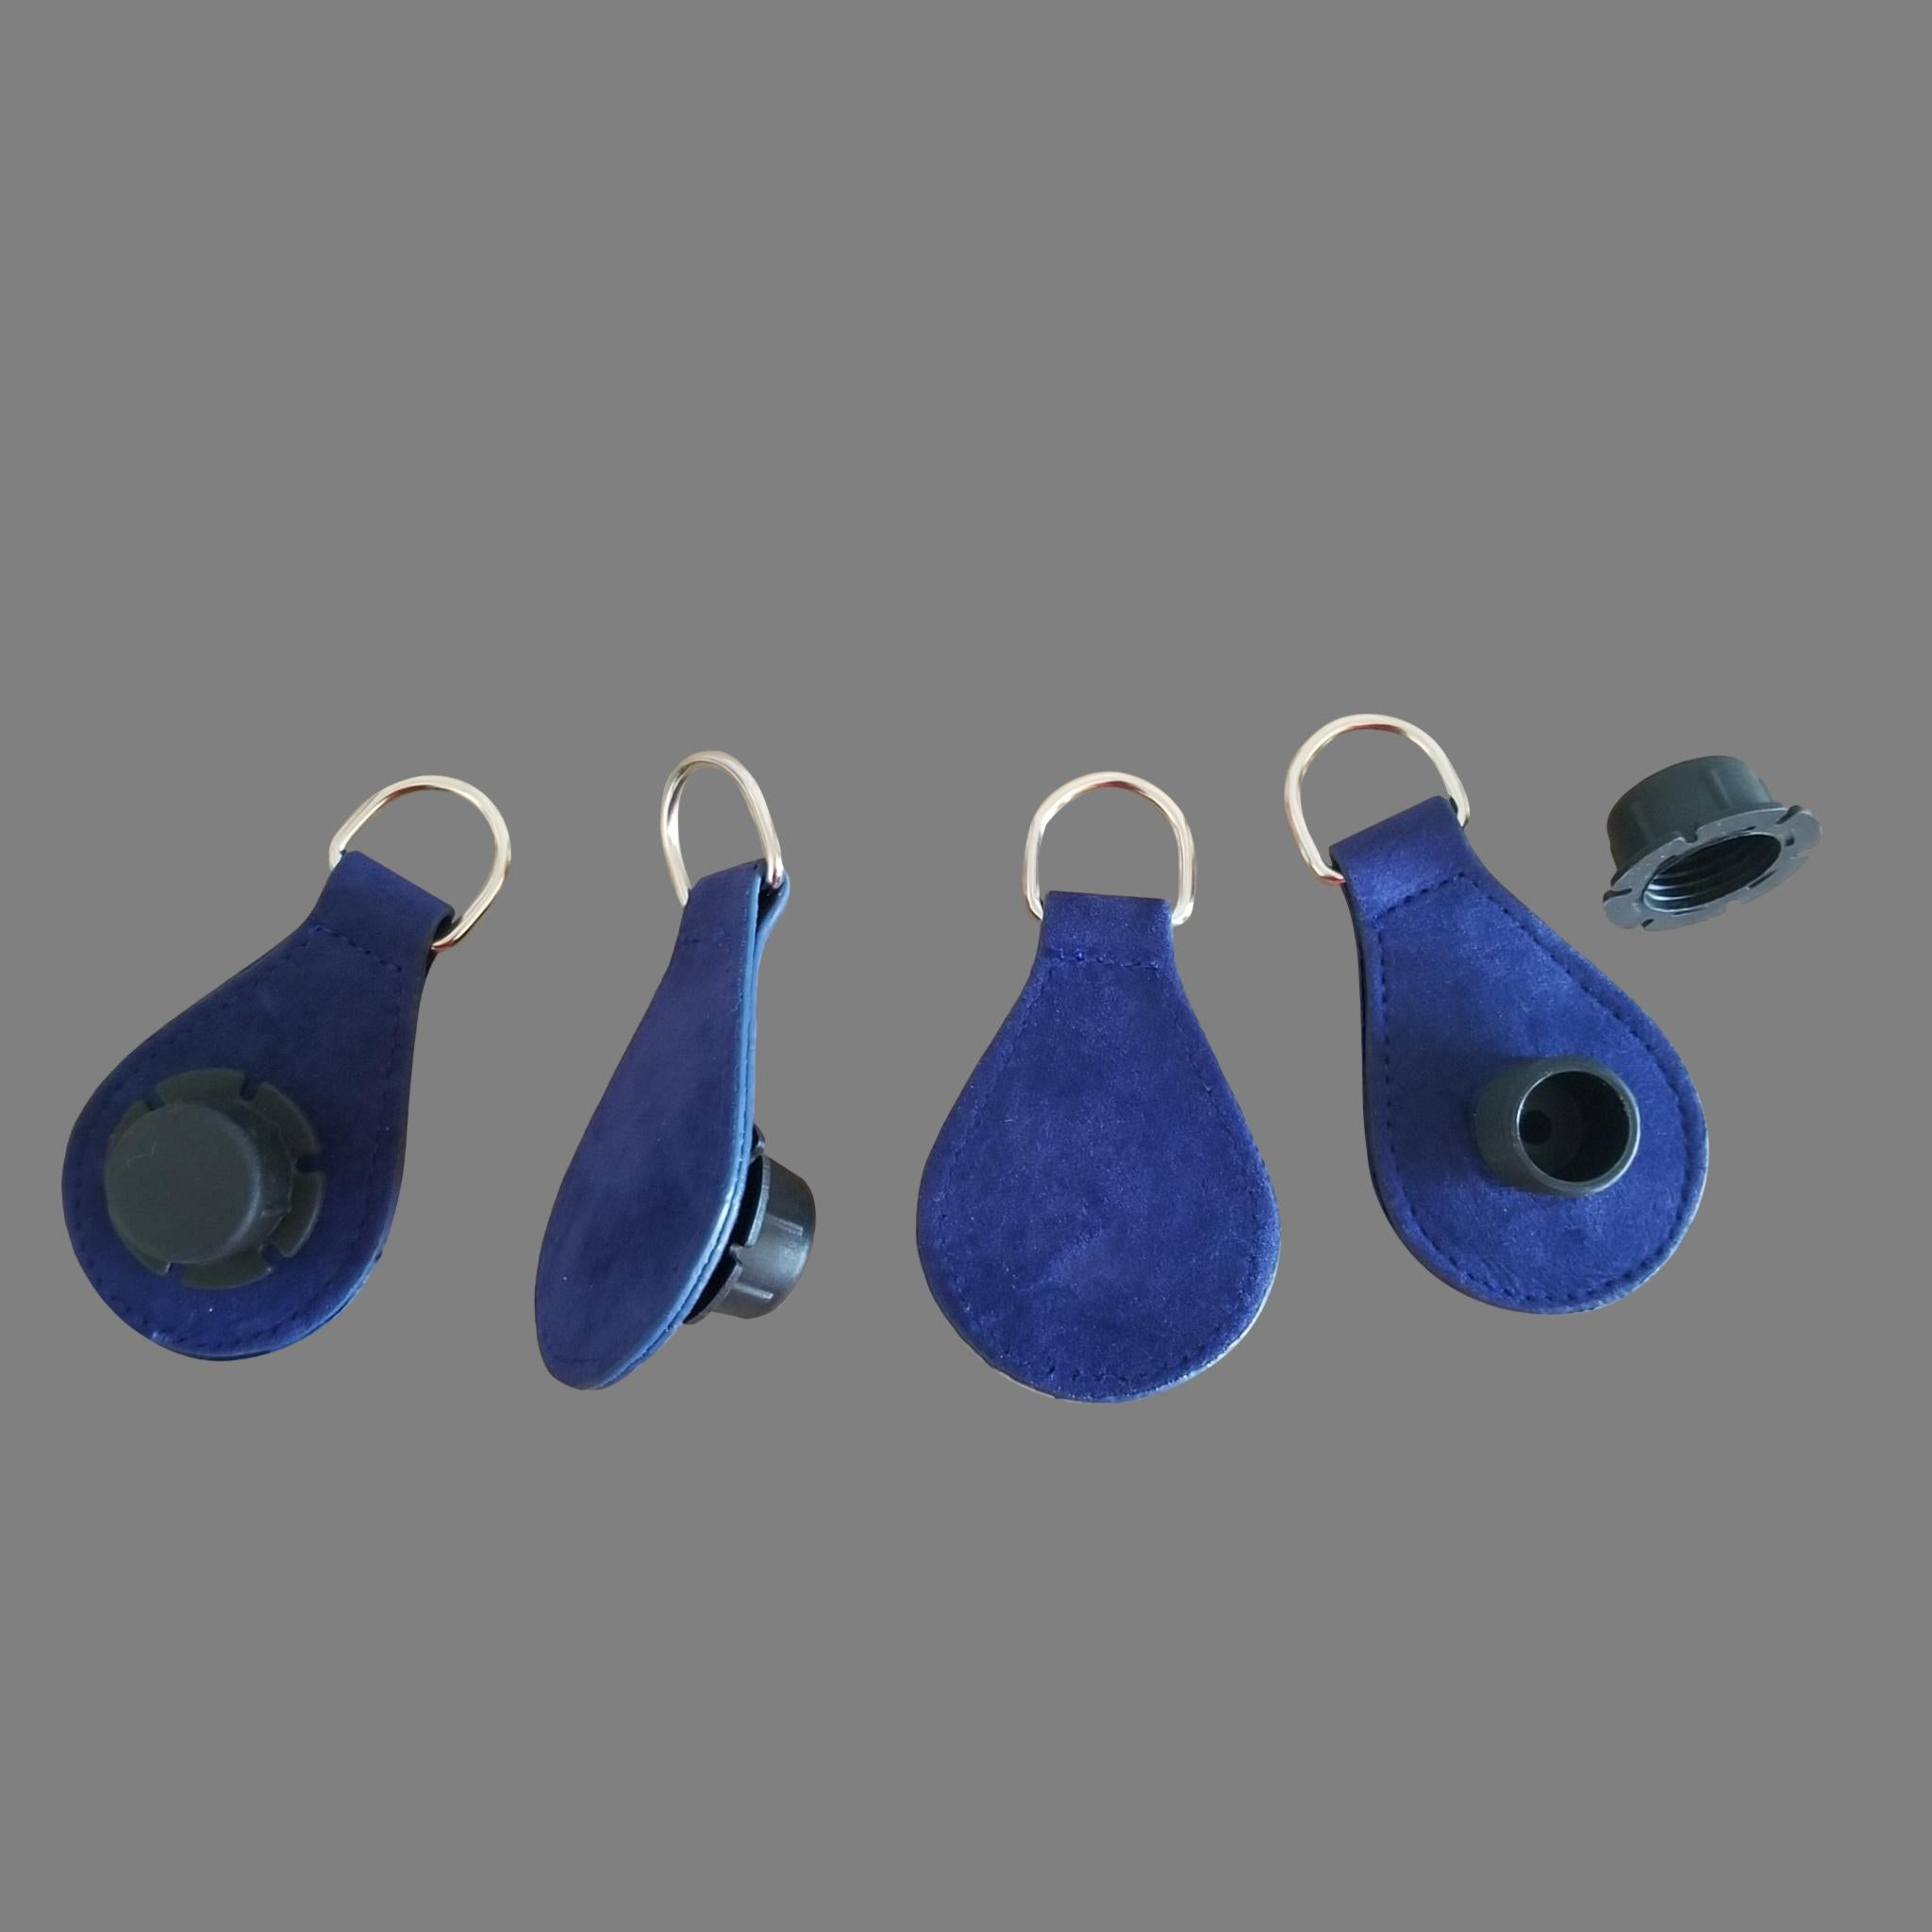 Designer Strap Handle - Royal Blue Drop Ends